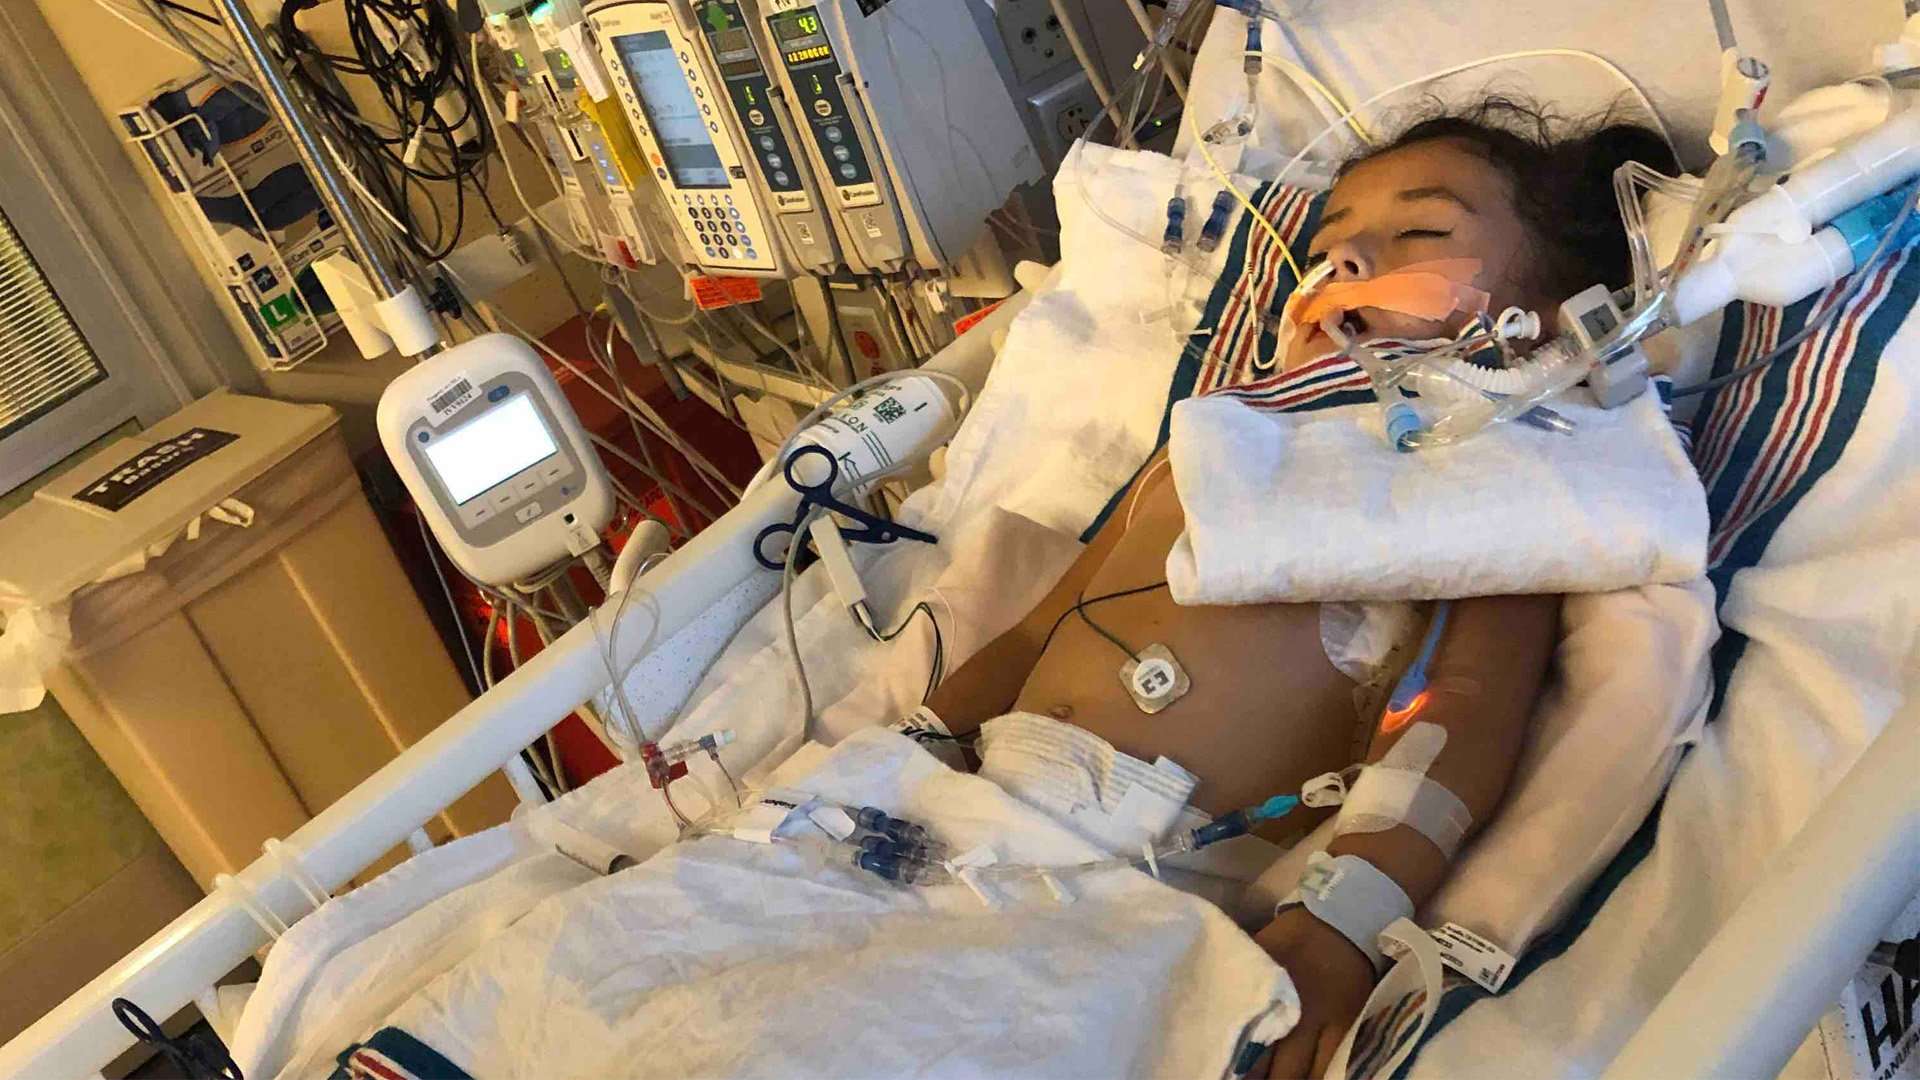 Aliyah Cardoza, 3, was hospitalized with a strain of the Coronavirus on Dec. 23, 2019. (Credit: GoFundMe)